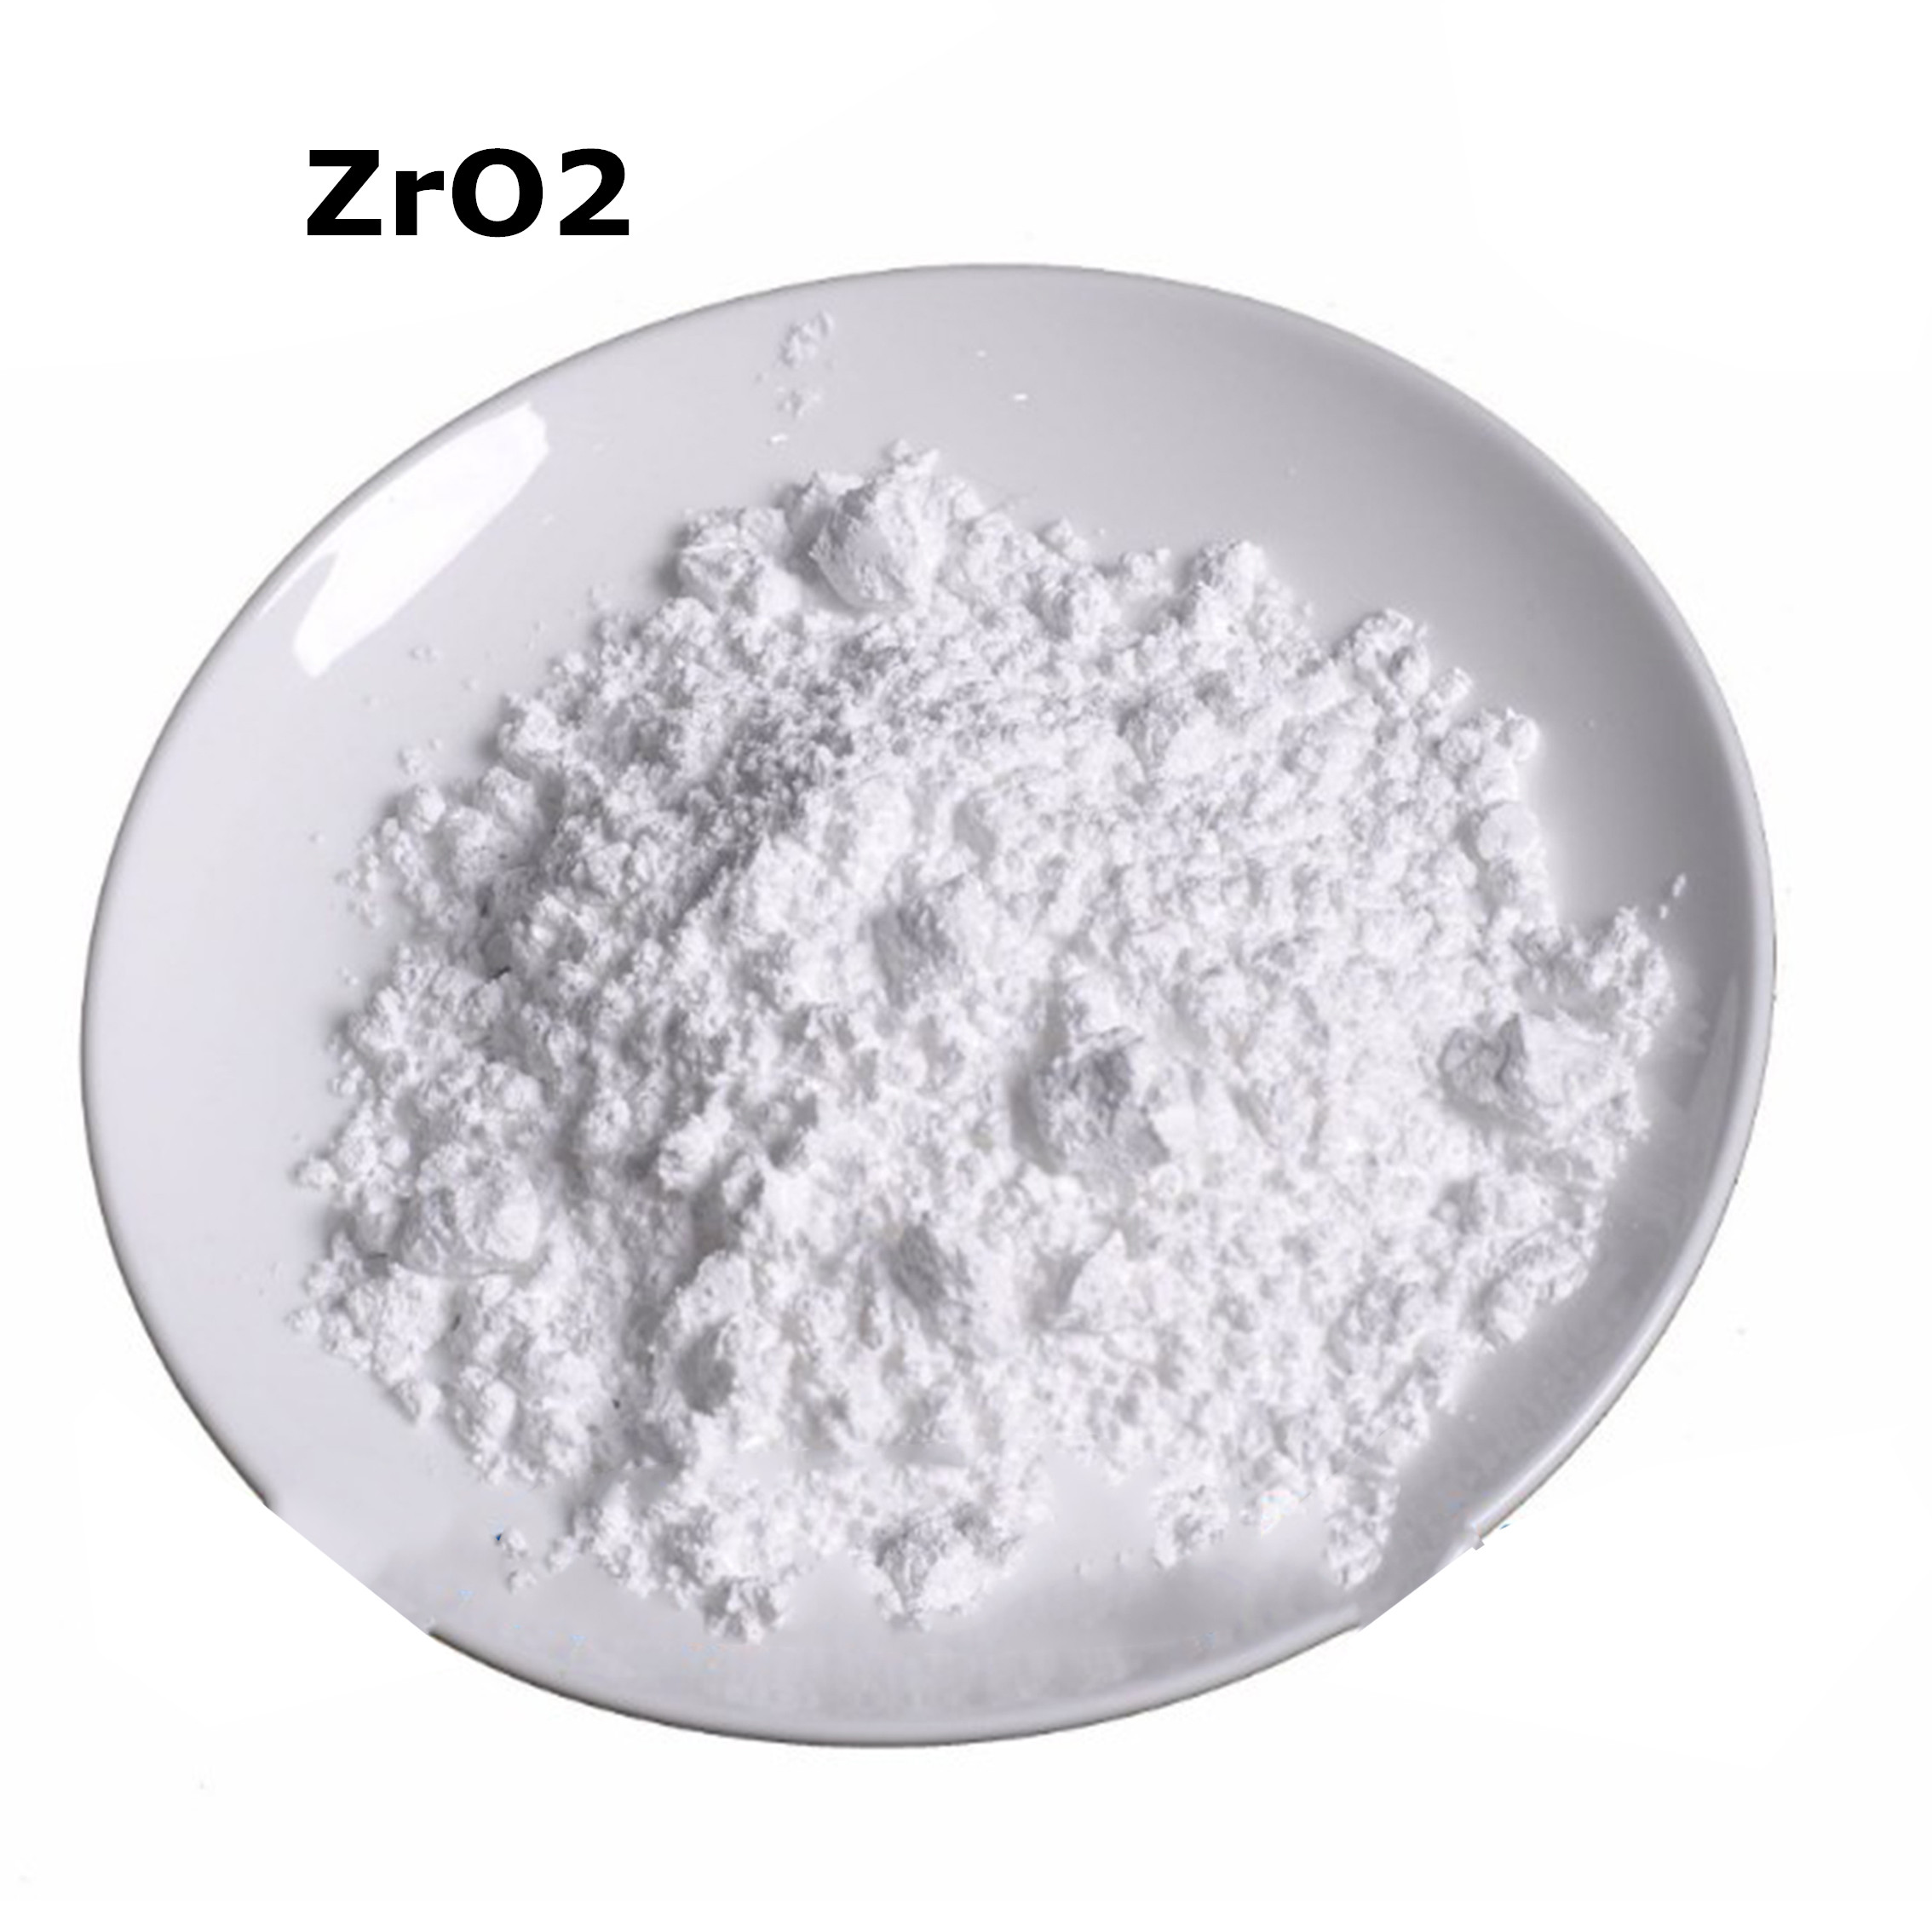 ZrO2 High Purity Powder 99.9% Zirconium Oxide For R&D Ultrafine Nano Powders About 1 Micro Meter